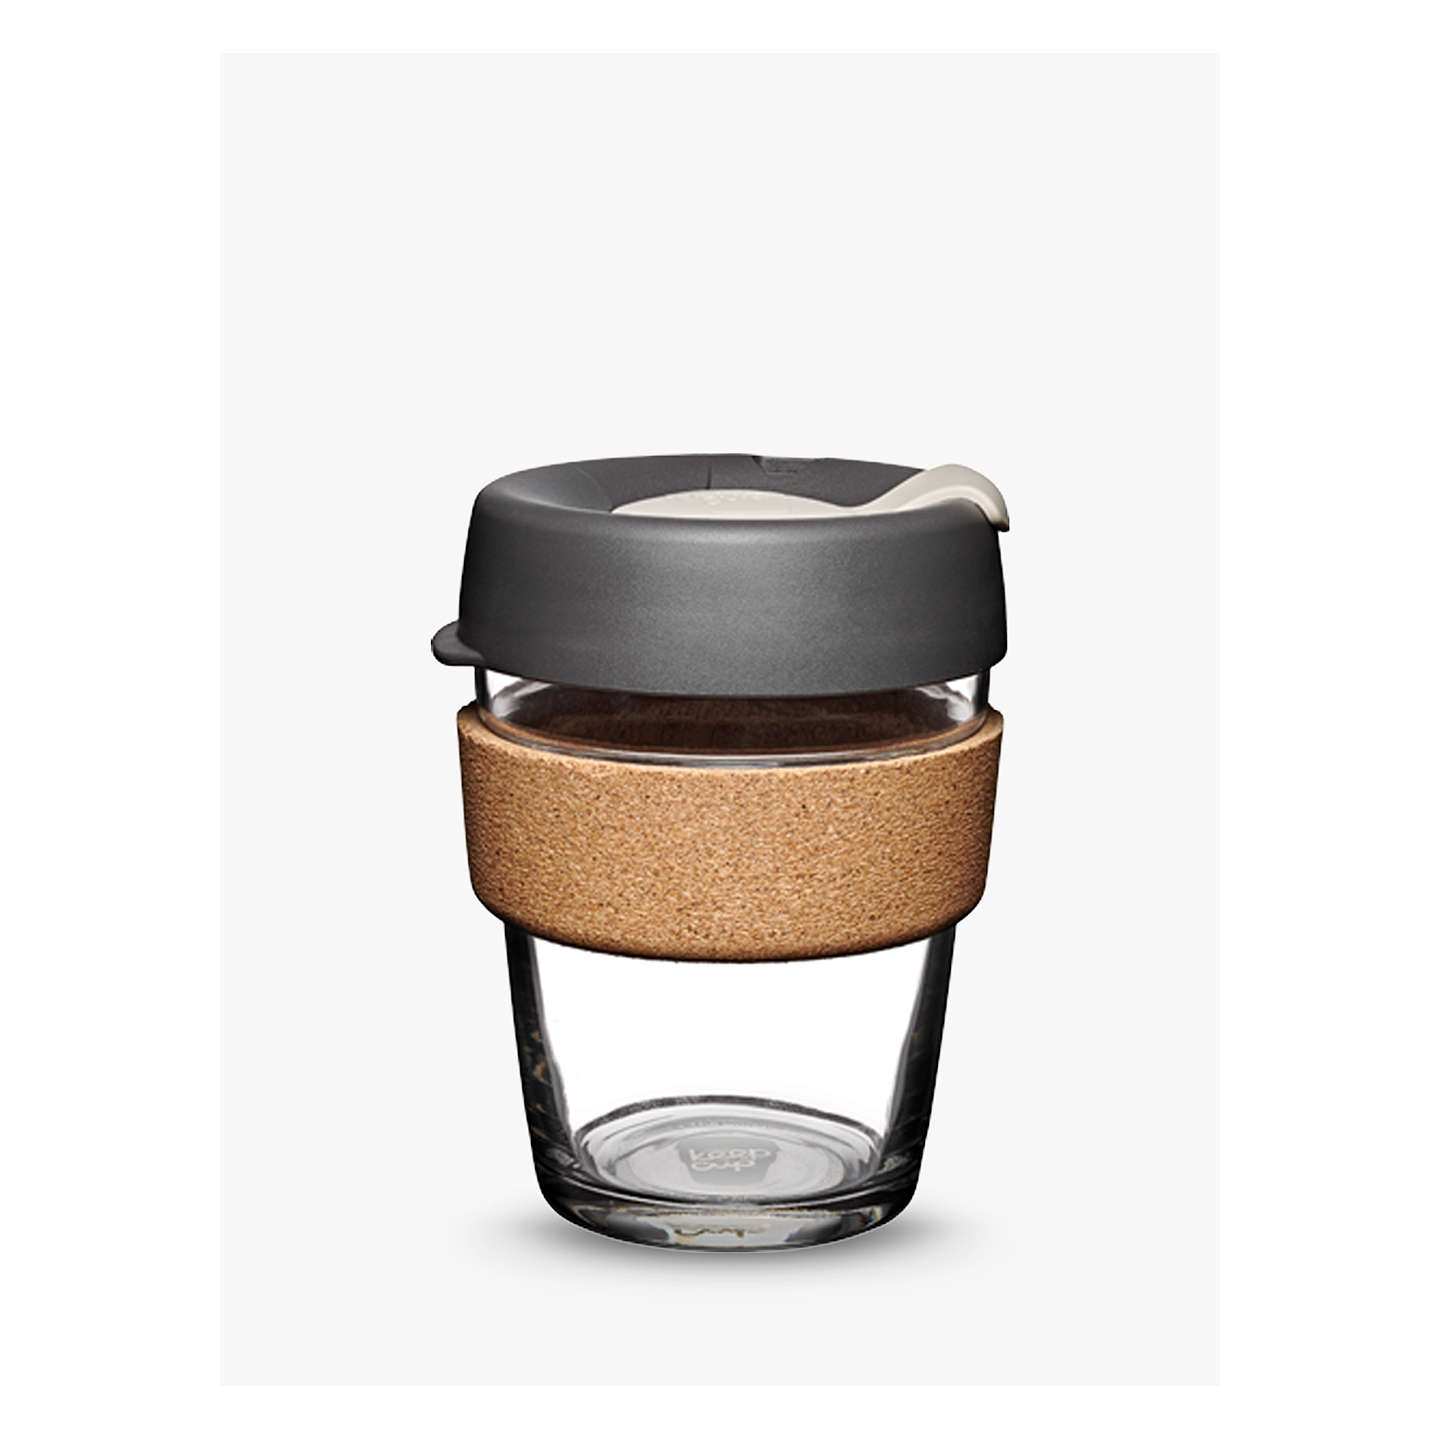 BuyKeepCup Cork Brew Reusable 12oz Glass Coffee Cup / Travel Mug, 340ml Online at johnlewis.com